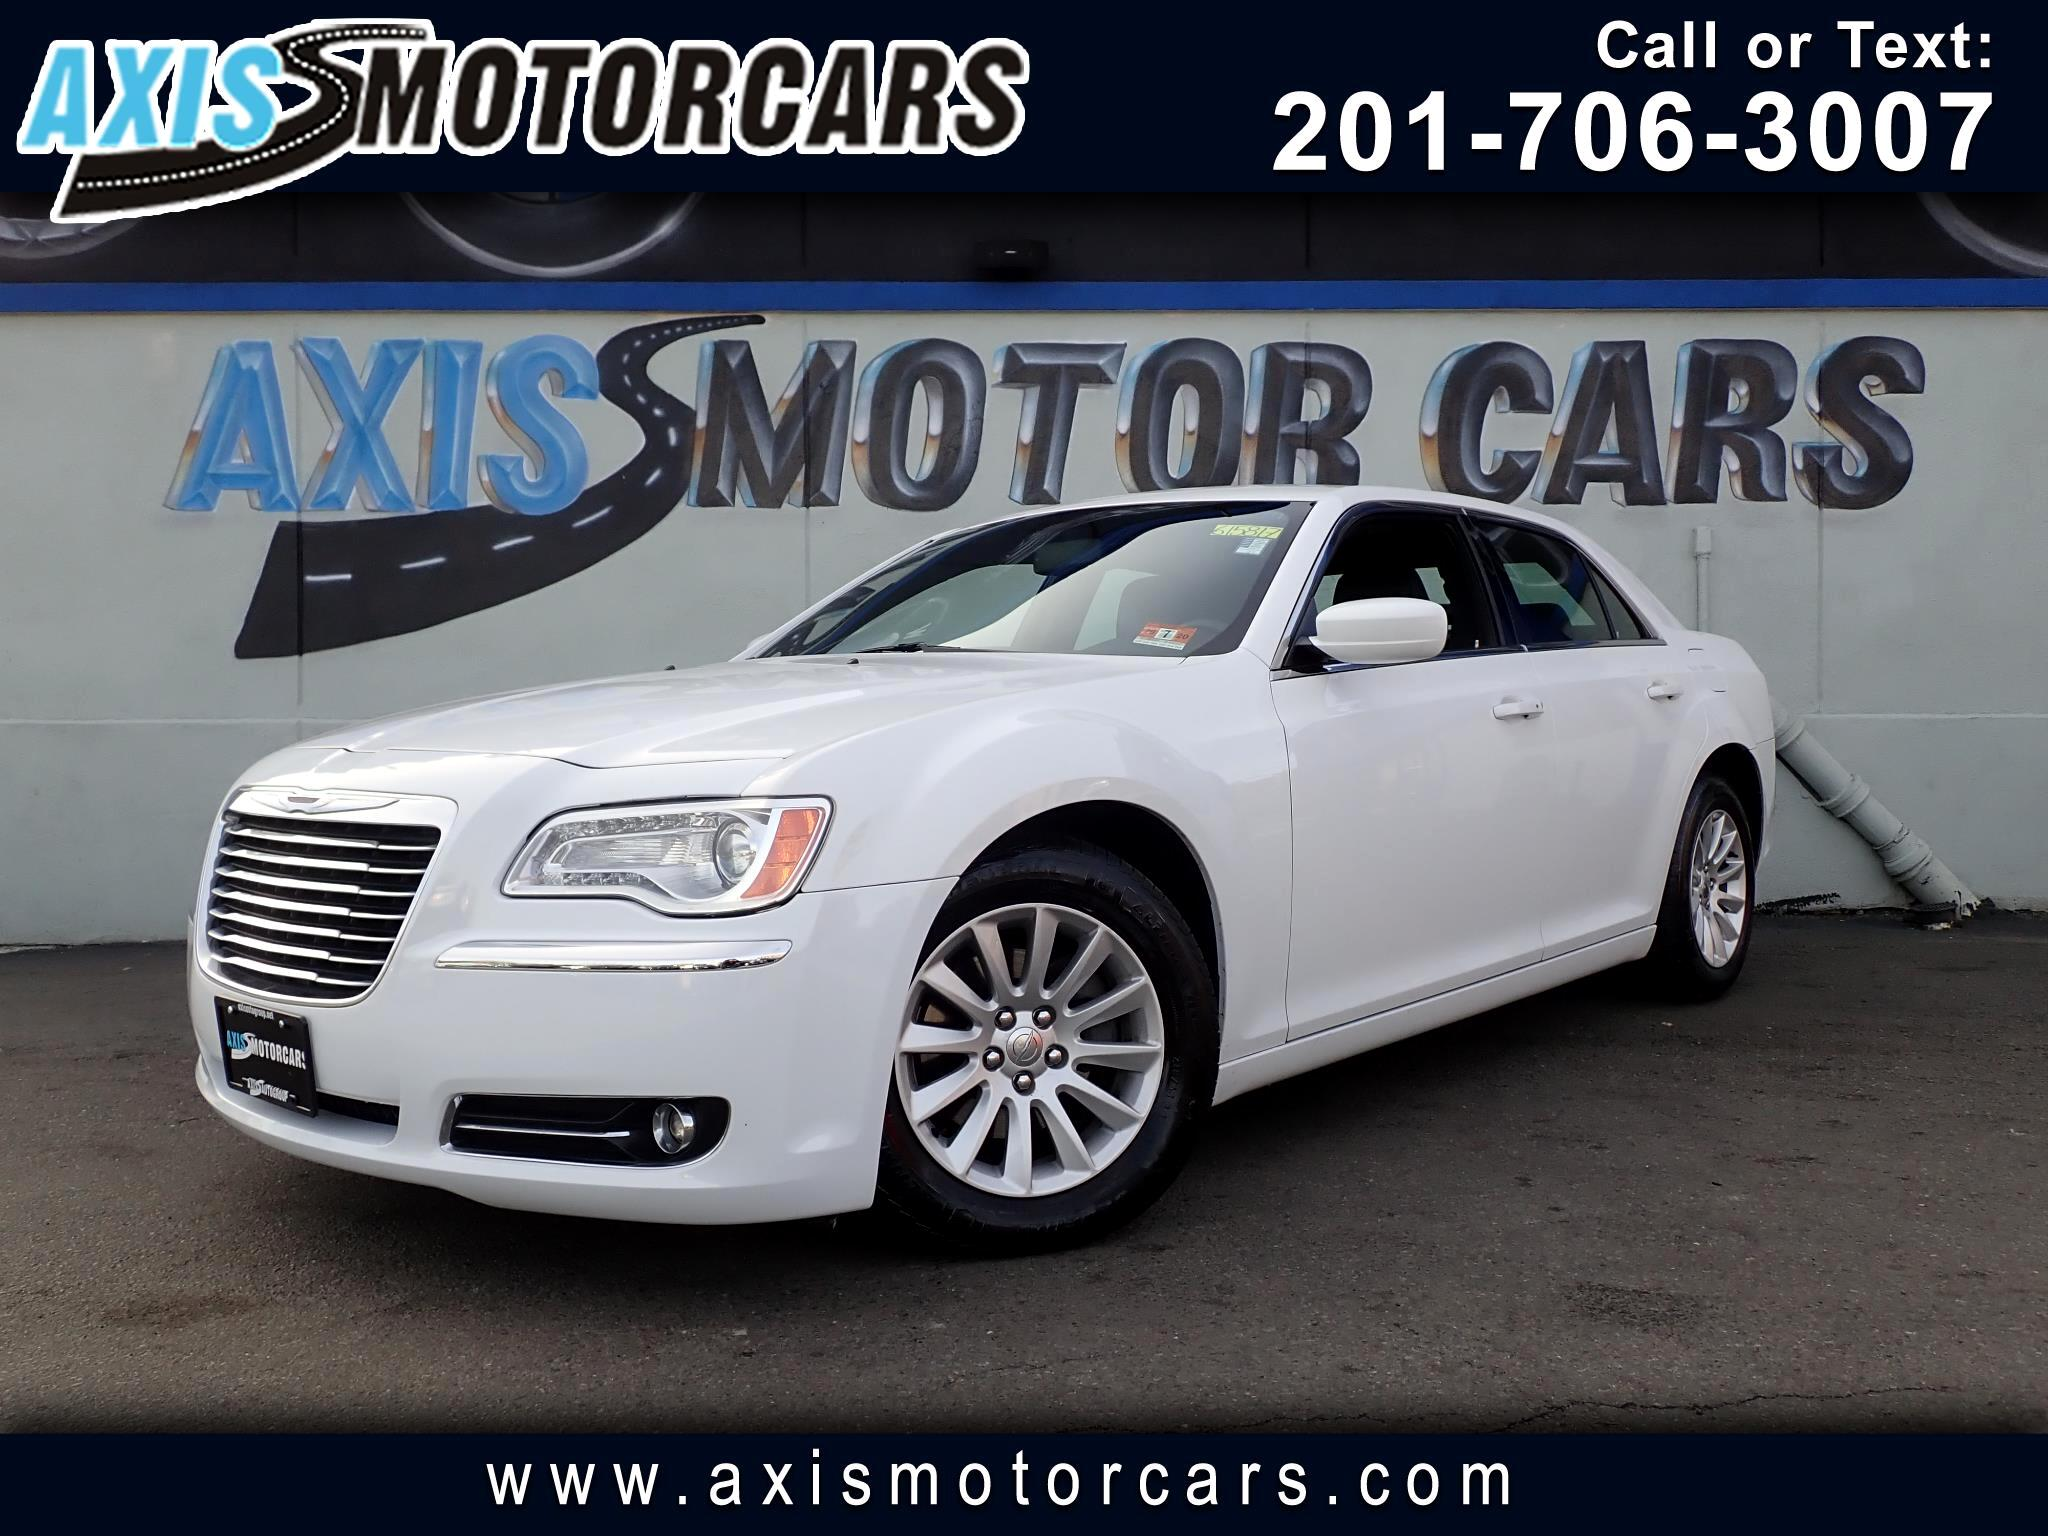 2013 Chrysler 300 w/Bakup Camera Leather